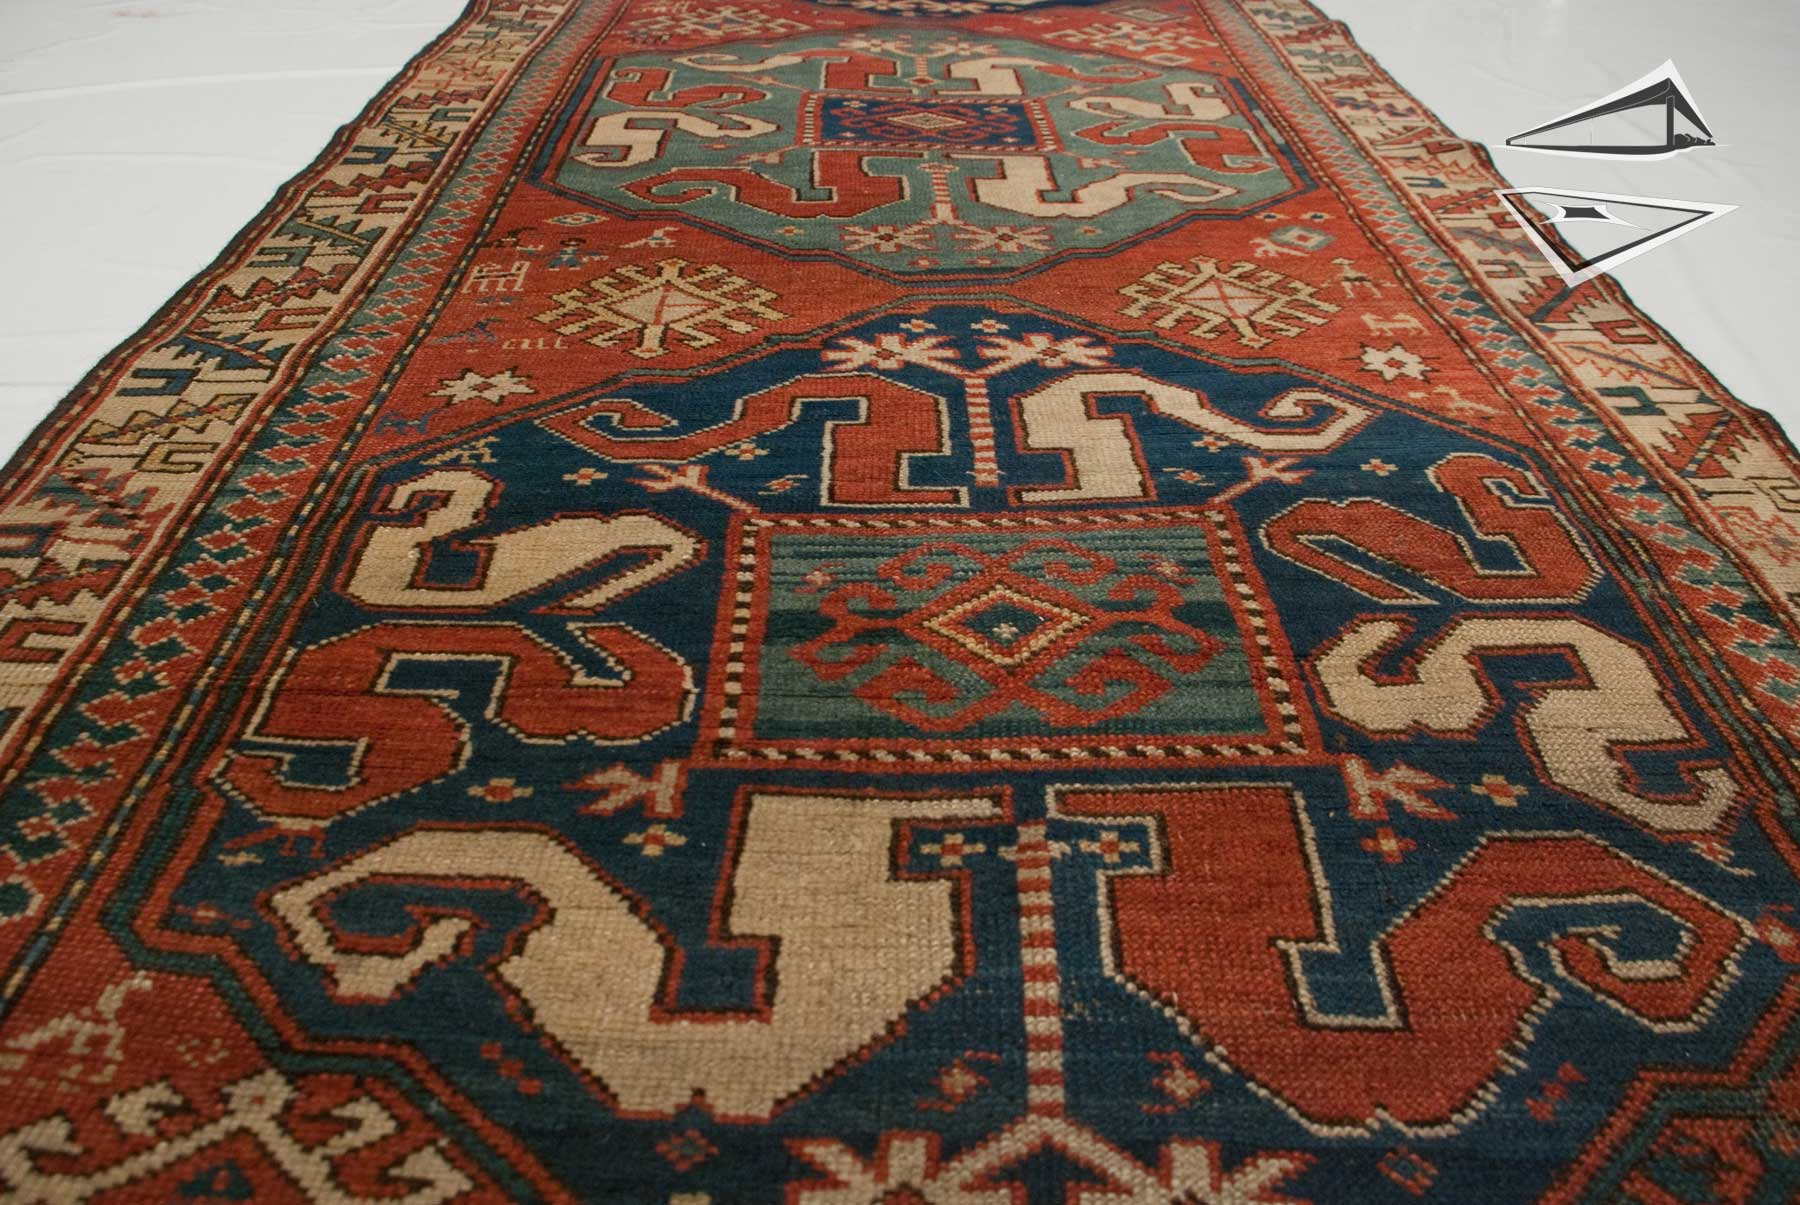 antique siberian kazak rug runner 3 39 x 8 39. Black Bedroom Furniture Sets. Home Design Ideas